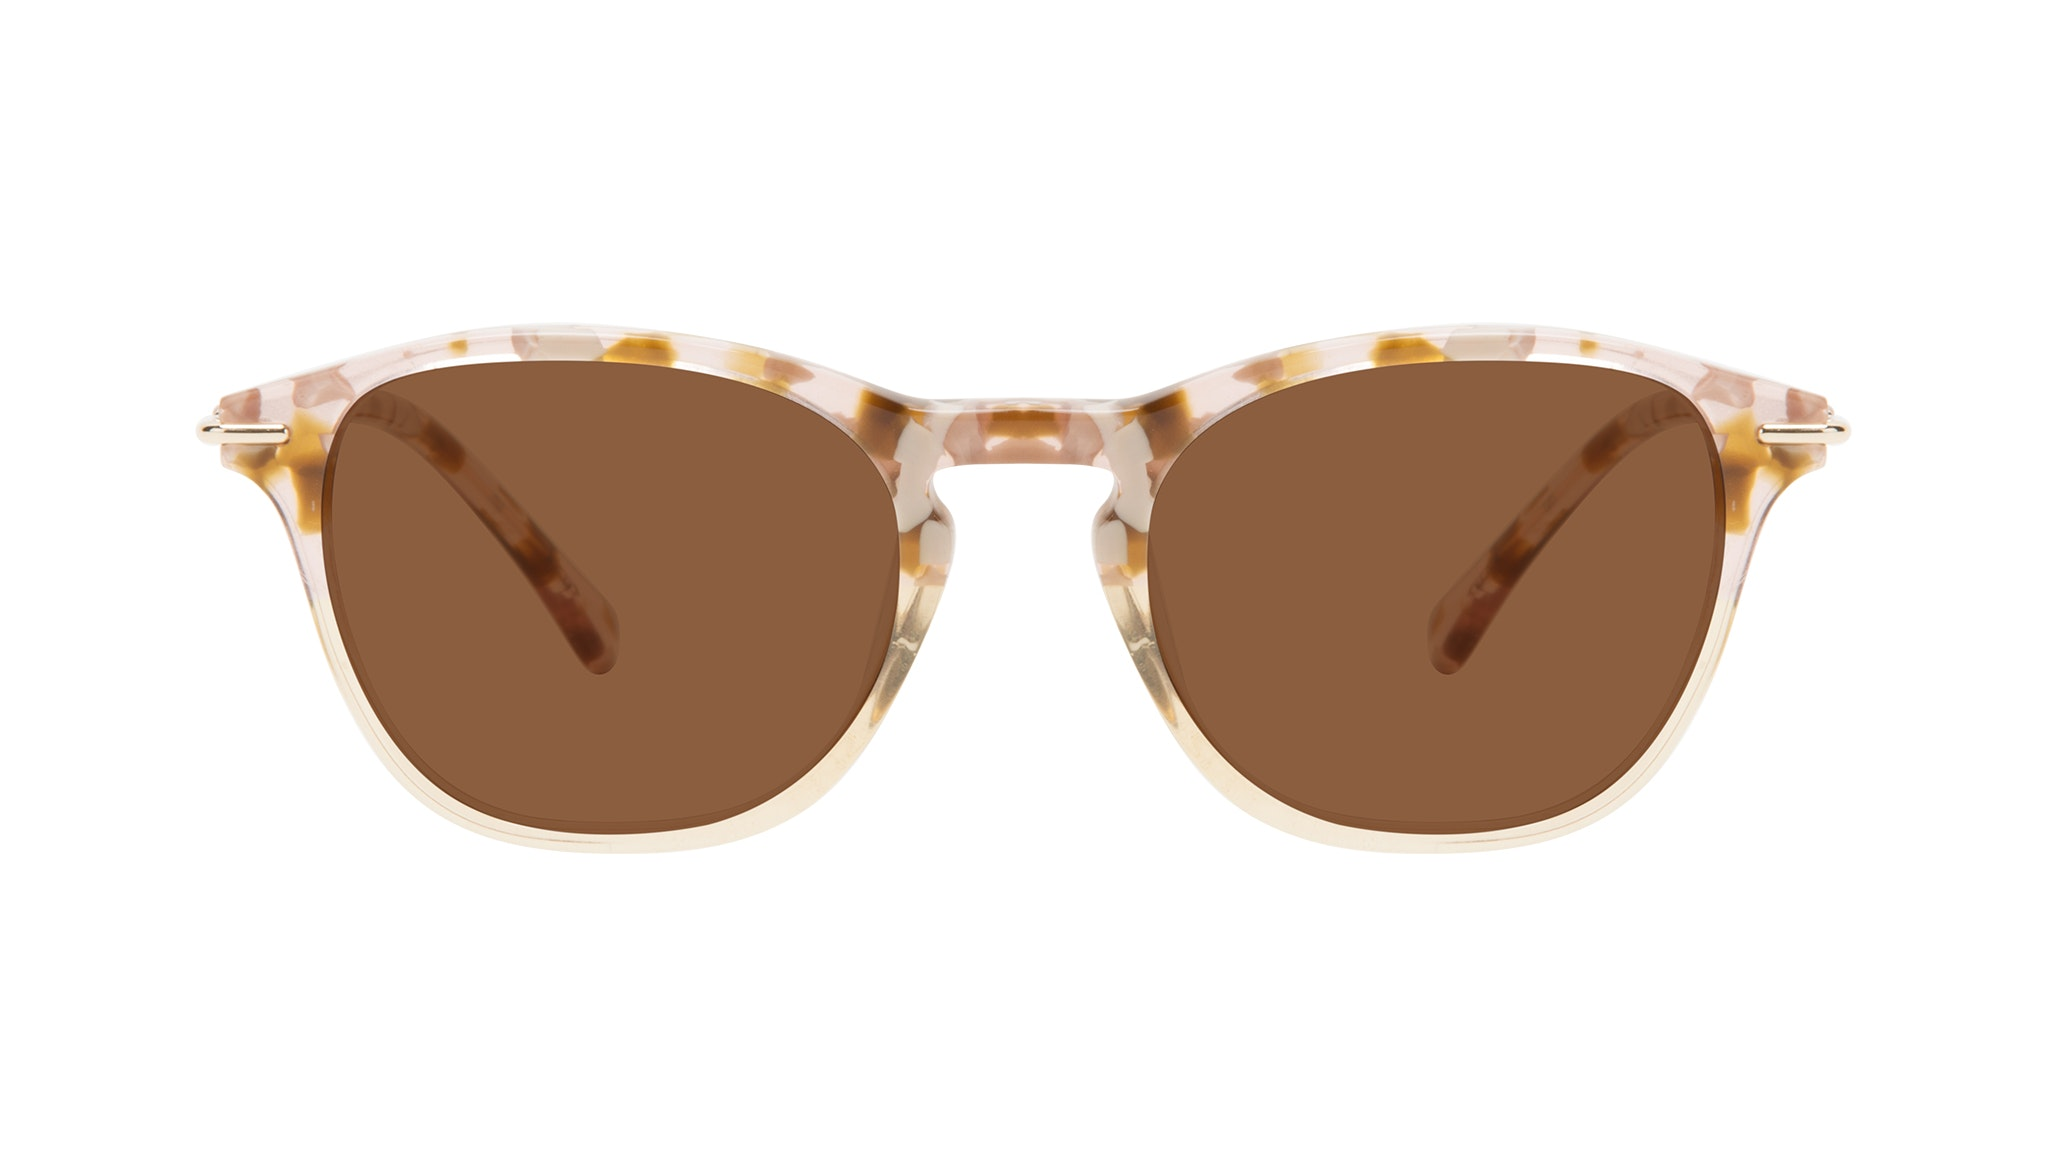 Affordable Fashion Glasses Square Sunglasses Women Charming Blond Flake Front